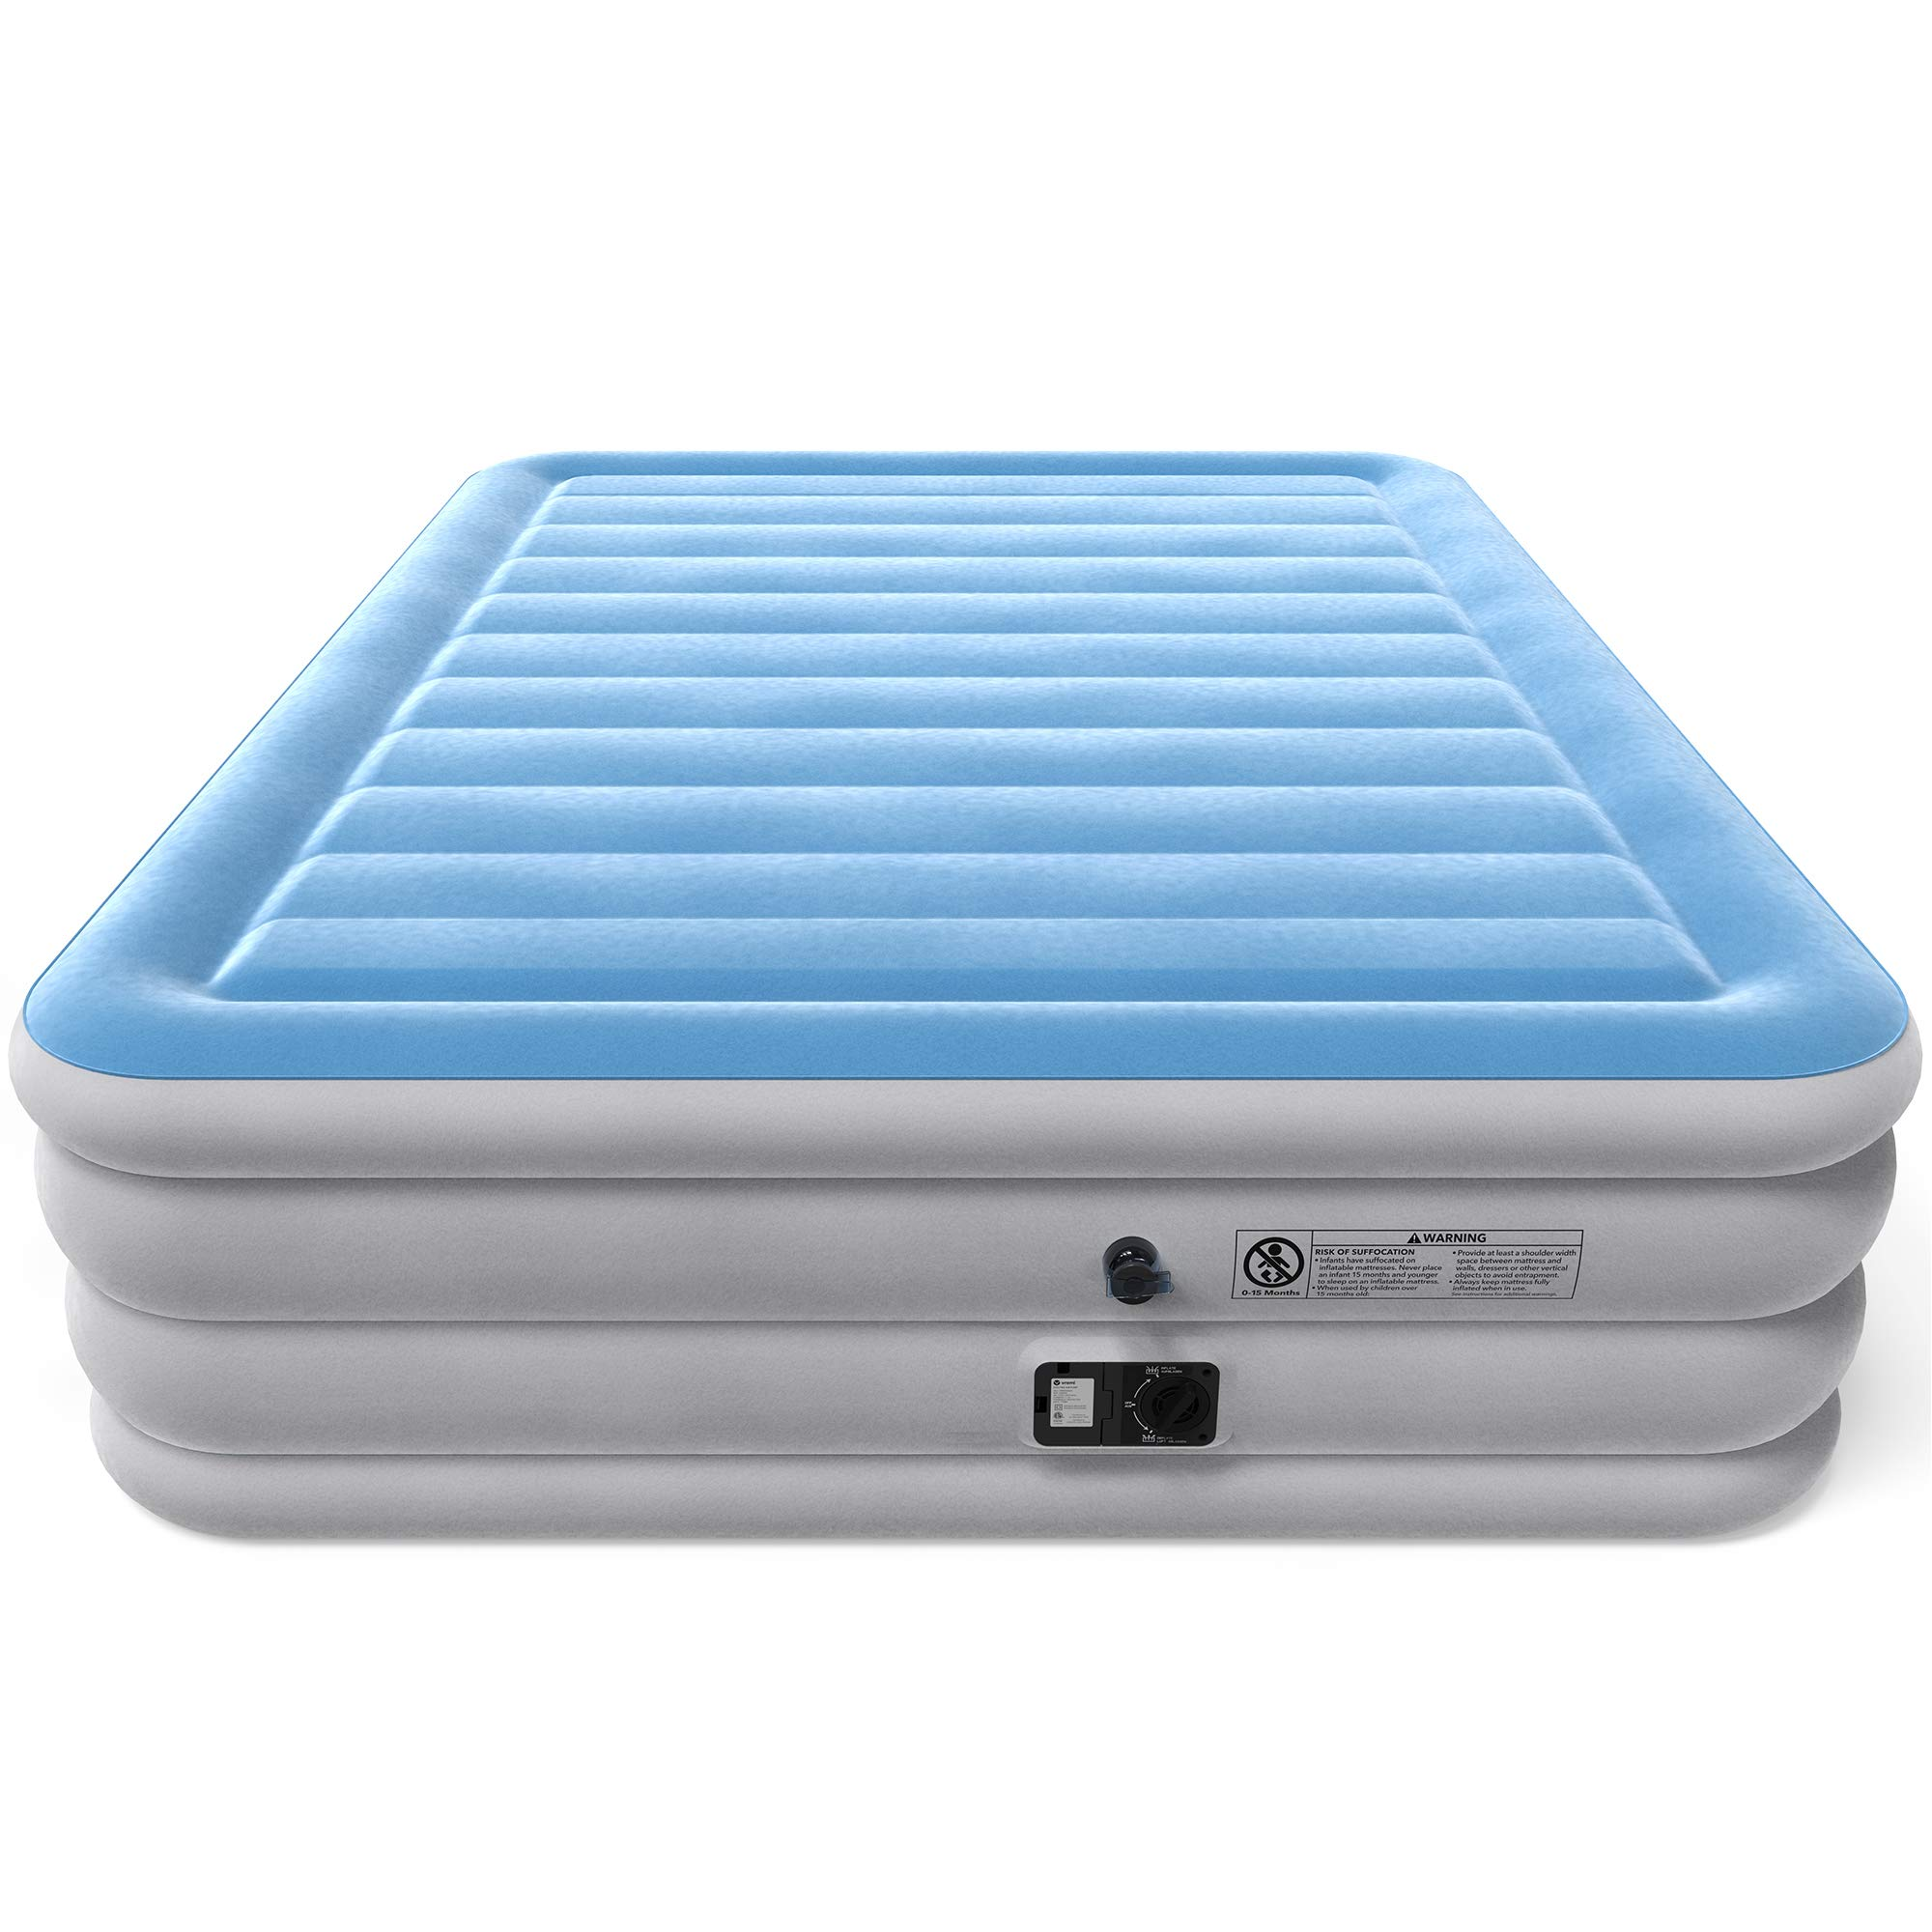 Vremi Inflatable Queen Air Mattress With Built In Pump 21 5 Raised Bed Height With Storage Bag For Camping And Travel Premium Flocked Top And Sides